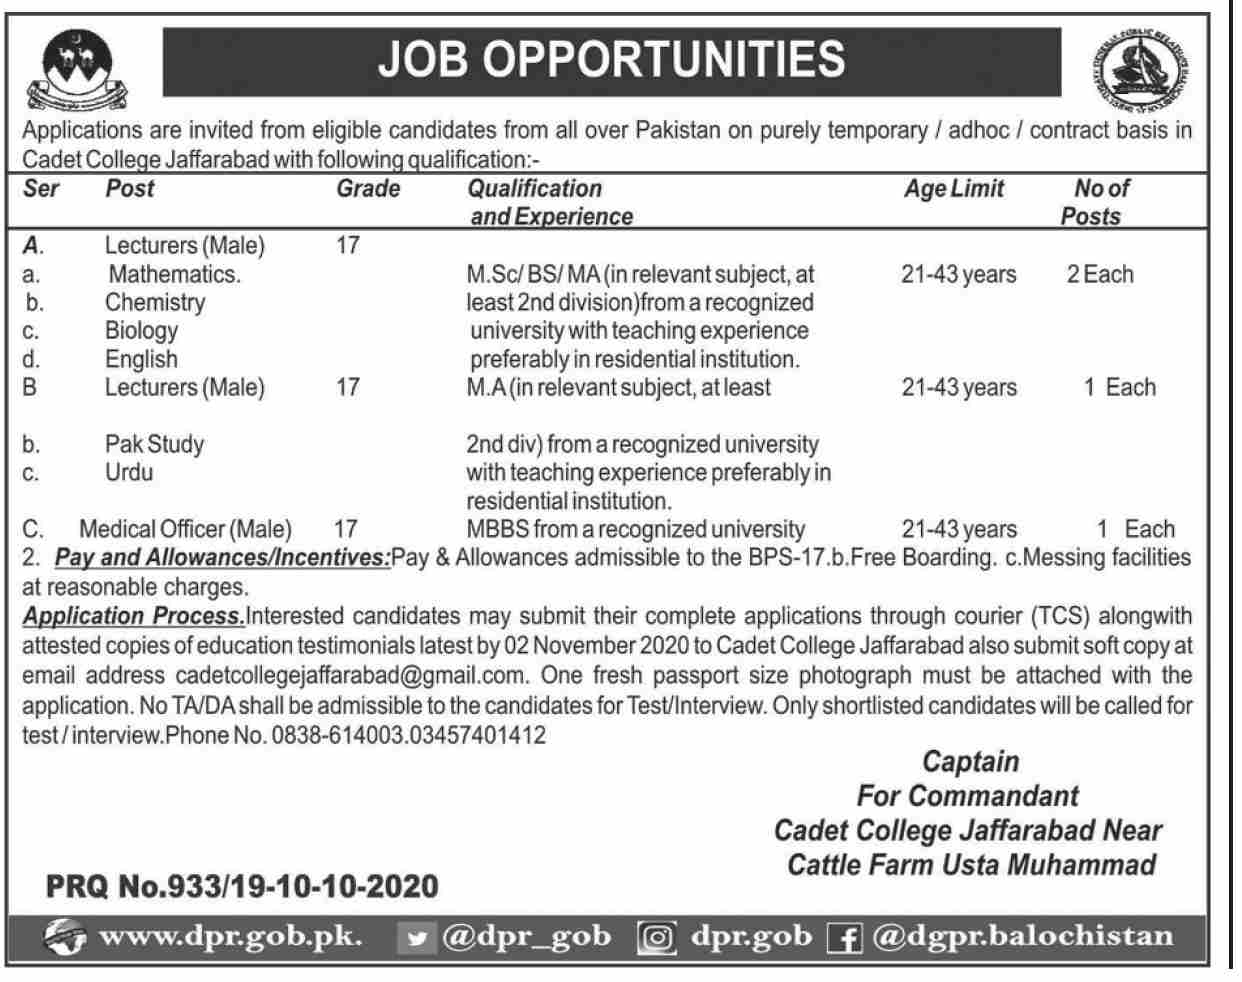 Cadet College Jaffarabad Job Advertisement For Govt Lecturer Vacancies in Pakistan Jobs 2021